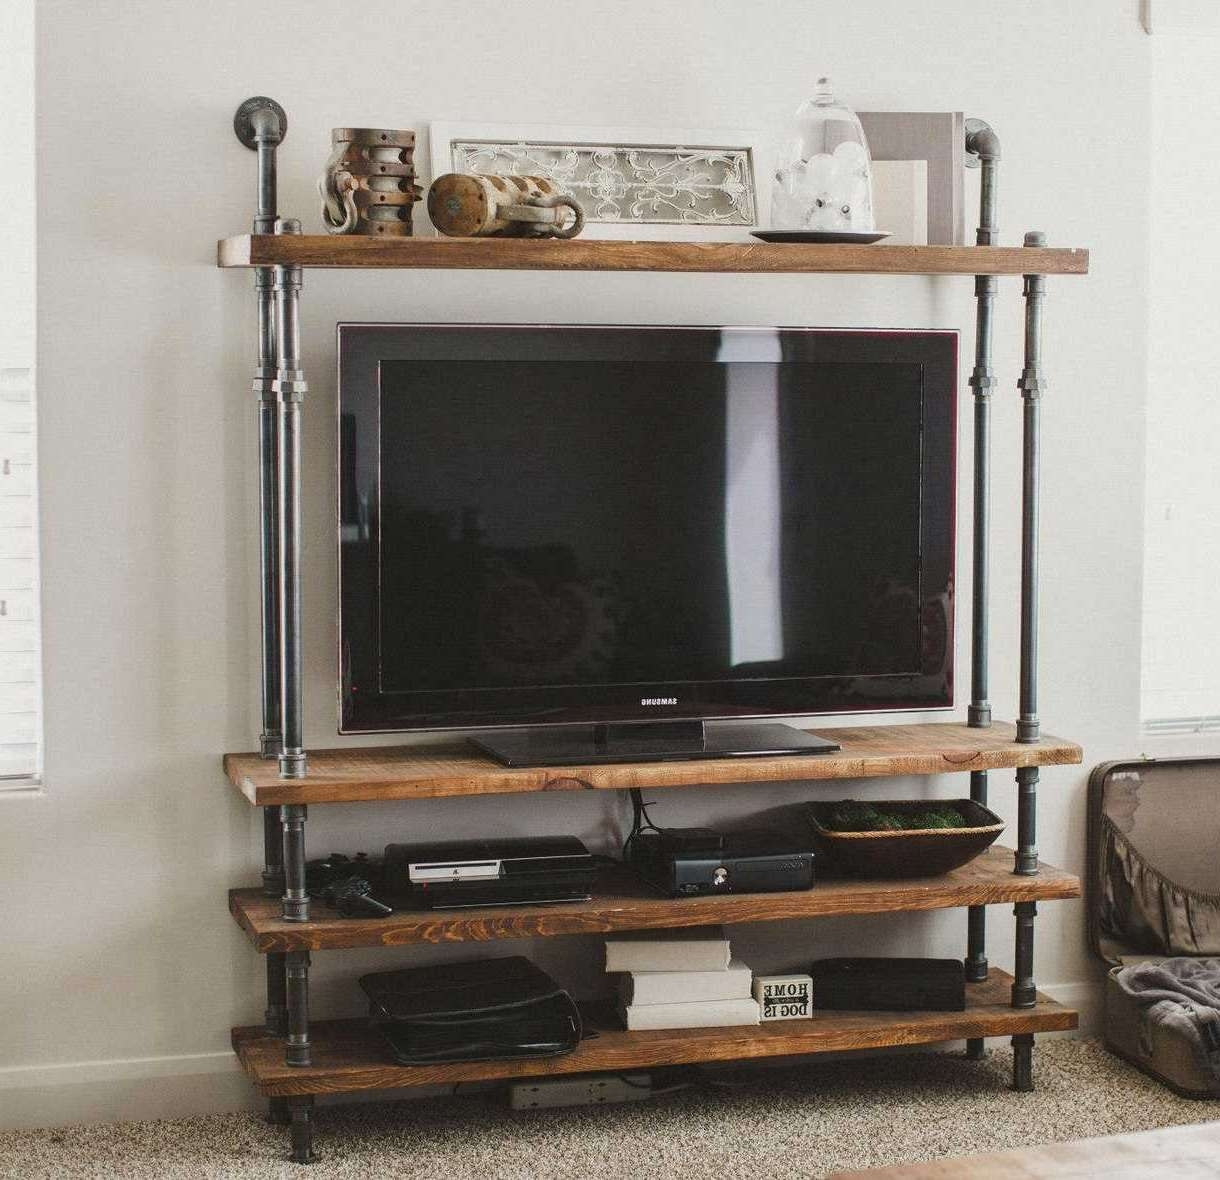 Cool Tv Stand, How To Choose A Tv Stand Tv Stands, Tvs And Intended For Cool Tv Stands (View 2 of 15)